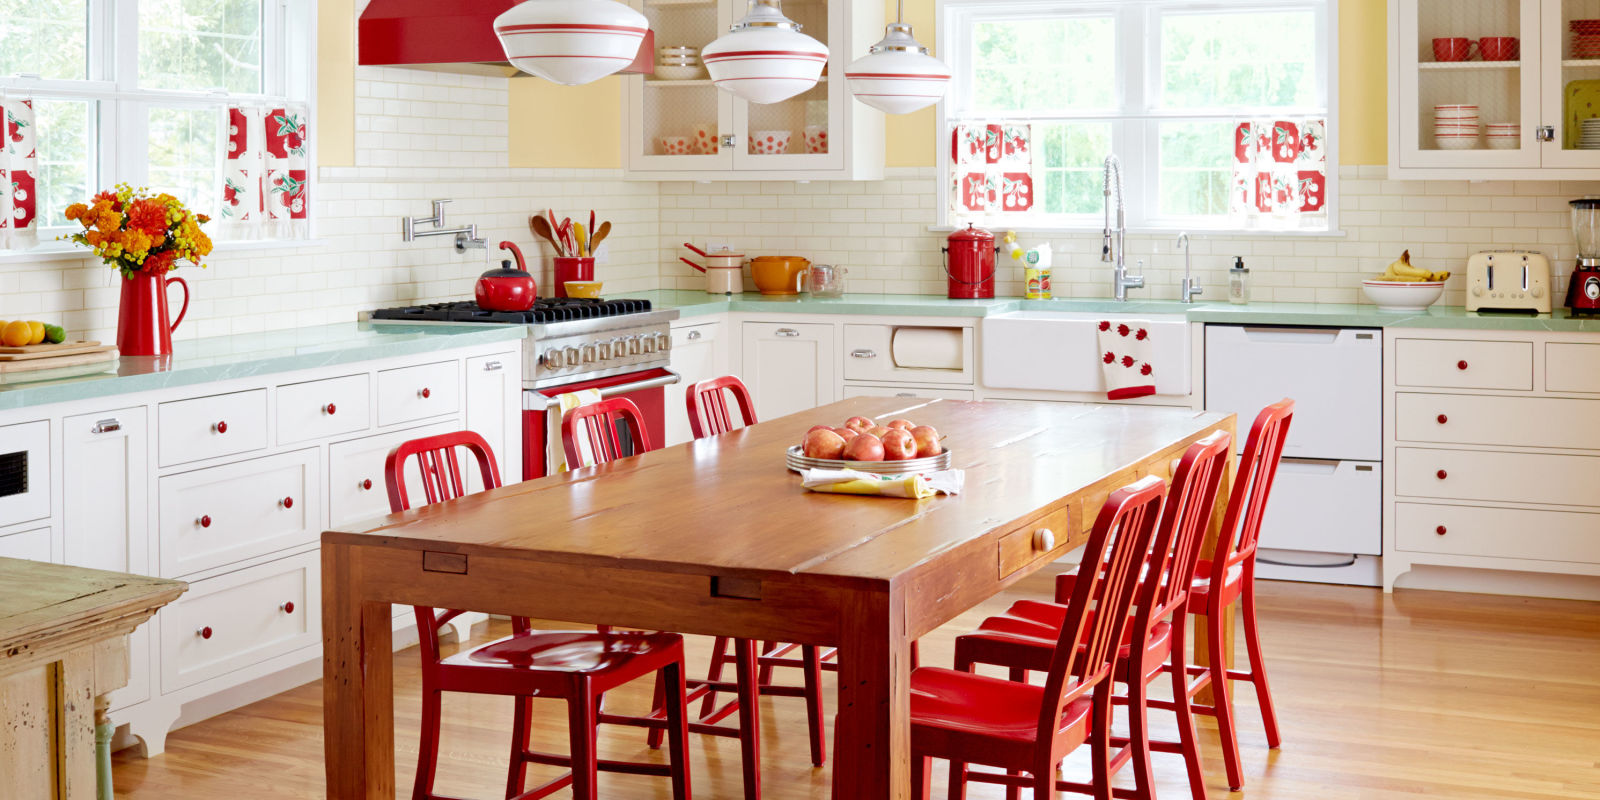 Retro kitchen kitchen decor ideas for Home decor ideas for kitchen